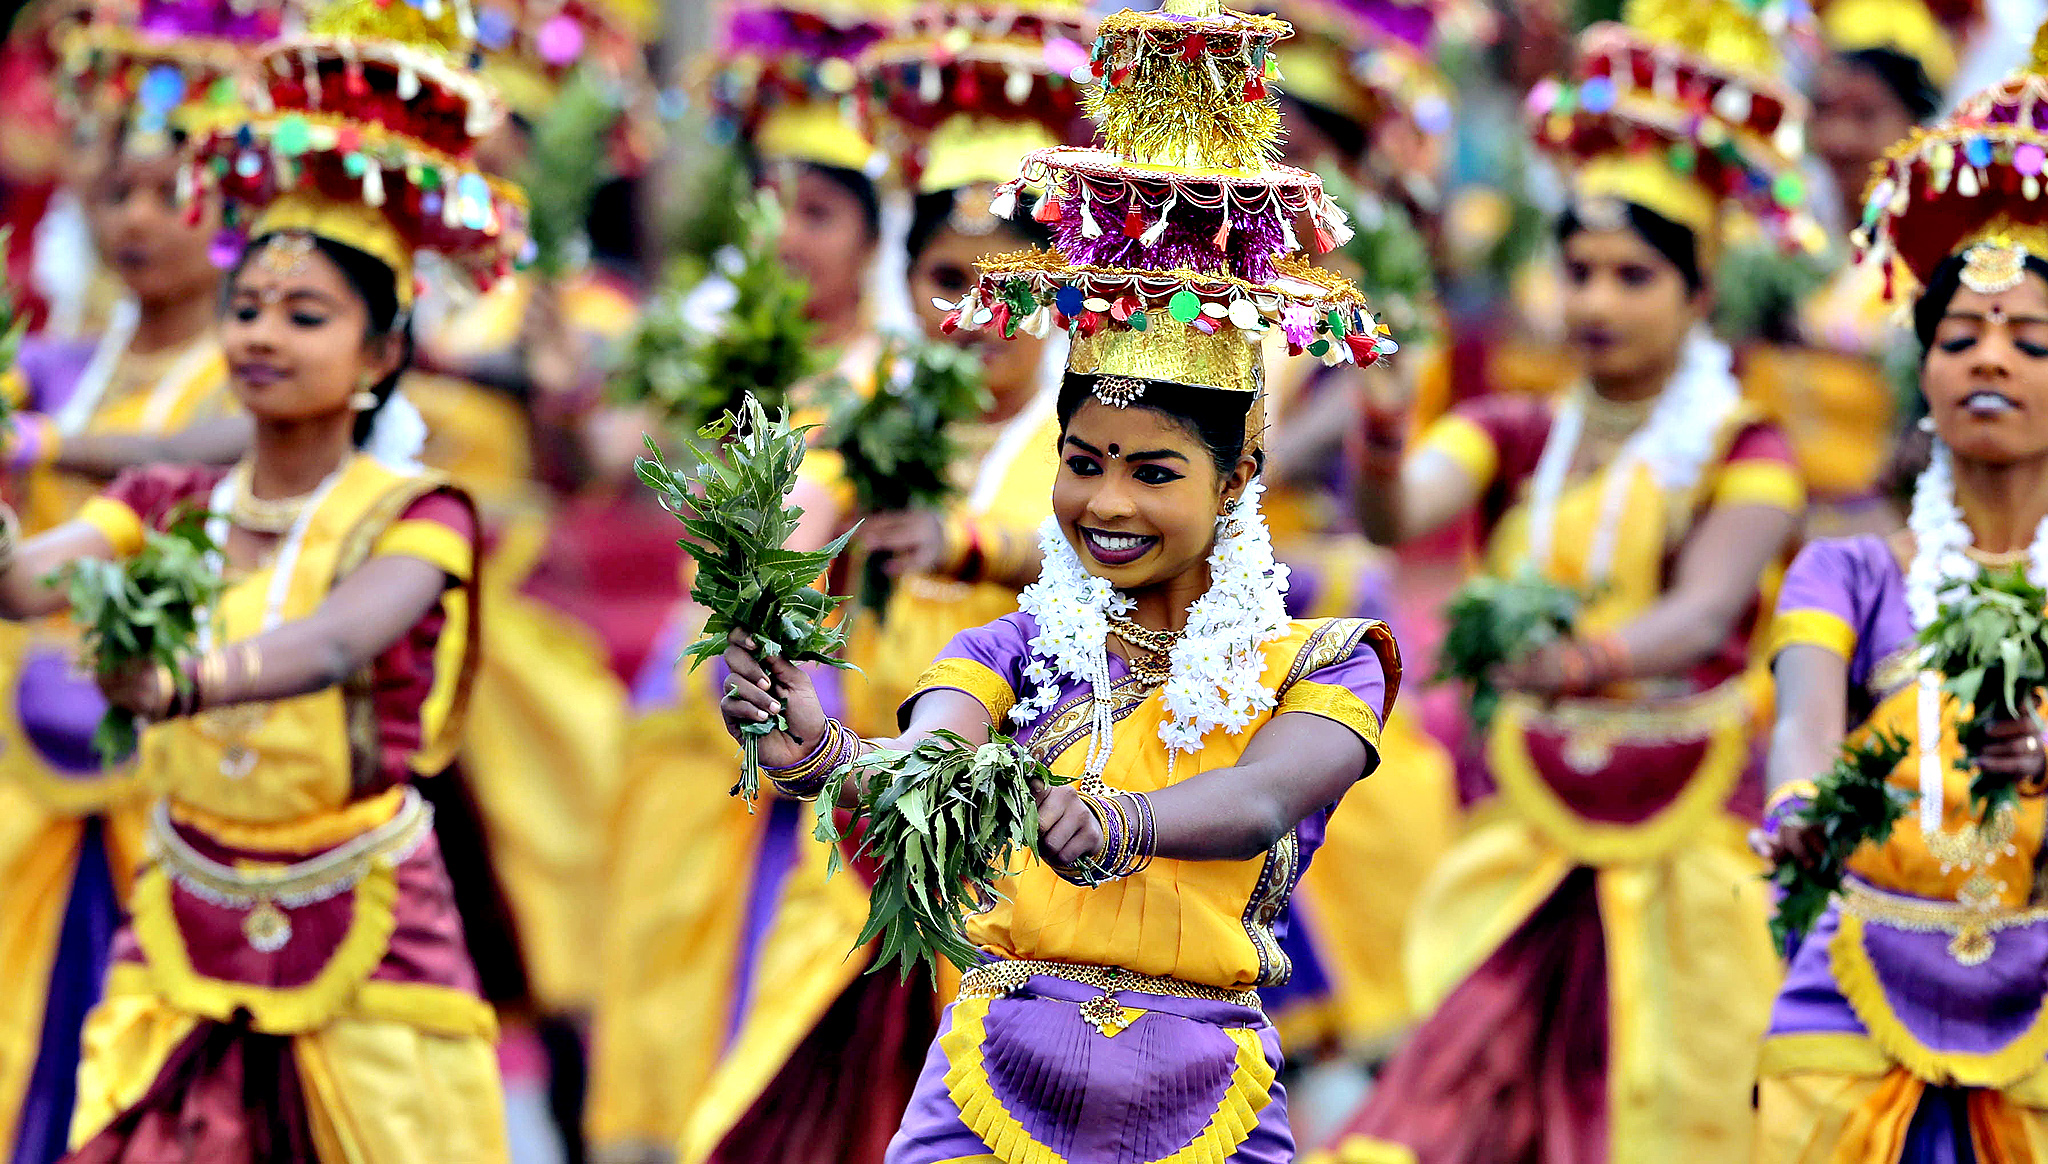 Sri Lankan ethnic Tamil dancers from northern province perform during Independence Day celebrations in Colombo, Sri Lanka, Wednesday, Feb. 4, 2015. Sri Lanka has failed to heal its deep ethnic divide since the end of the nation's civil war five years ago, the president acknowledged Wednesday in a major speech calling for national reconciliation.